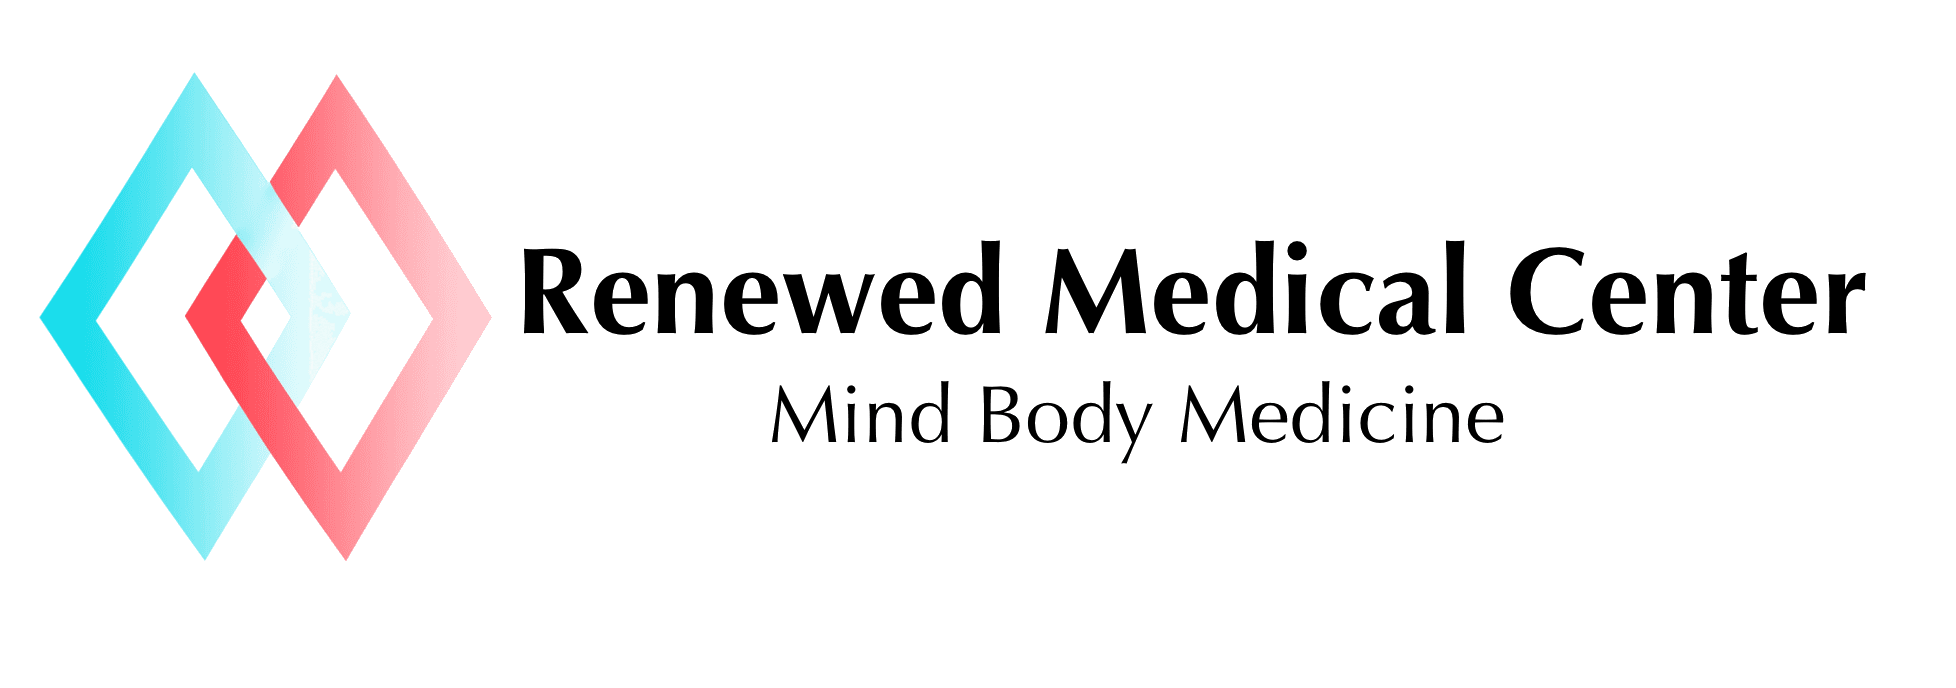 Ozone Therapy (Cellular Healing) Specialist - Millsboro, DE: Renewed